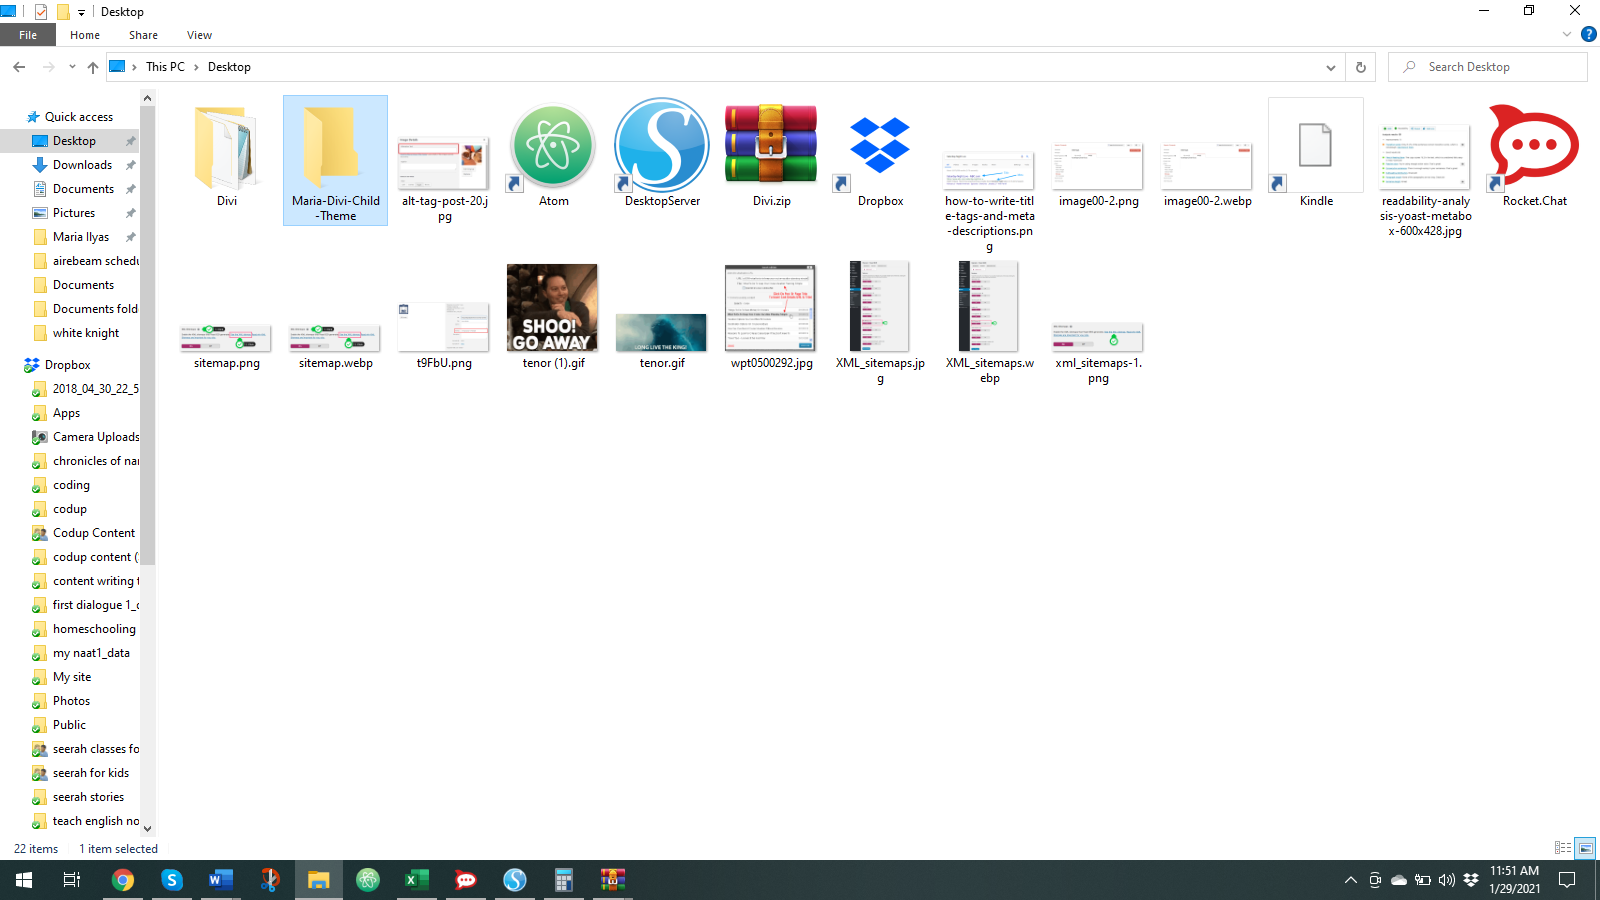 Create a folder anywhere on your computer and give it a unique name.